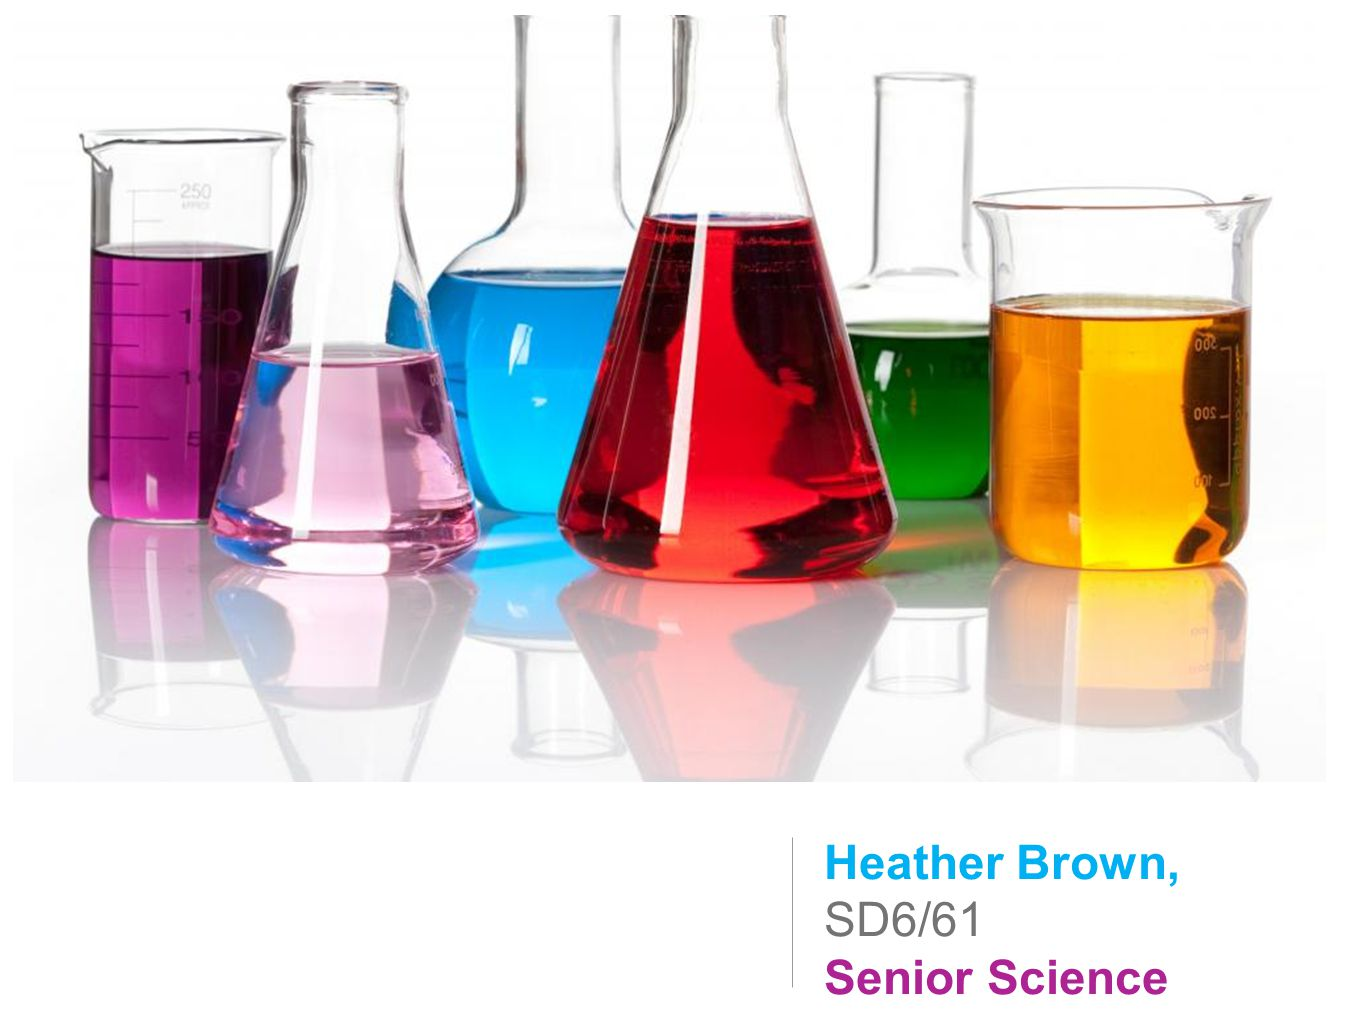 Heather Brown, SD6/61 Senior Science